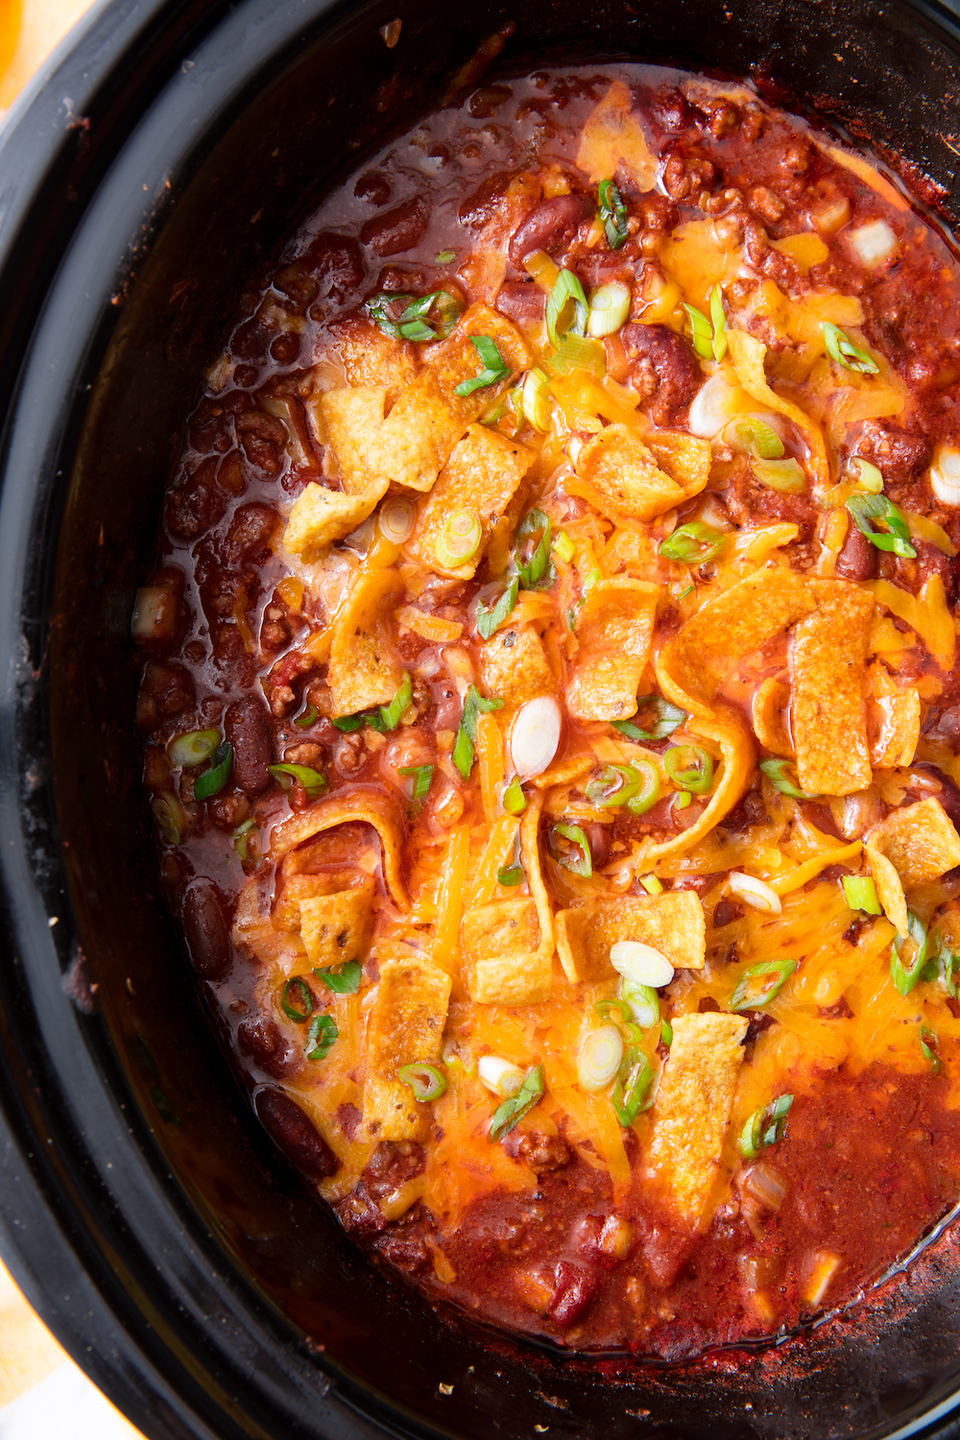 """<p>TBH, the chili is our favorite part of football season. </p><p>Get the recipe from <a href=""""https://www.delish.com/cooking/recipe-ideas/a21581186/slow-cooker-chili-recipe/"""" rel=""""nofollow noopener"""" target=""""_blank"""" data-ylk=""""slk:Delish"""" class=""""link rapid-noclick-resp"""">Delish</a>. </p>"""